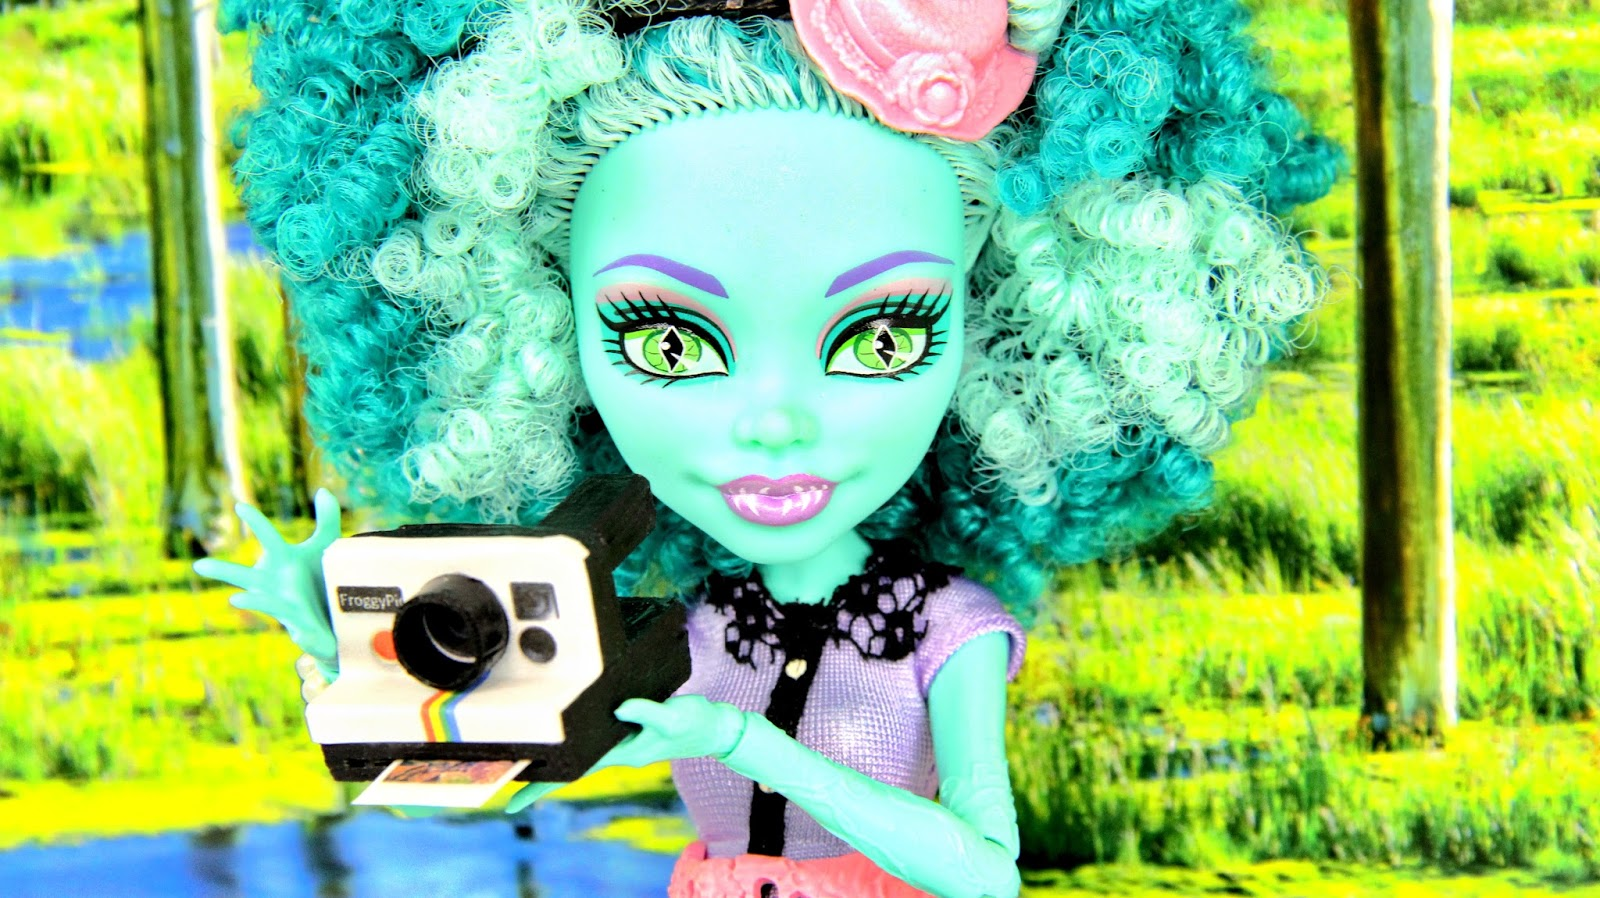 My Froggy Stuff: Say Cheese! How to Make a Doll Instant Camera